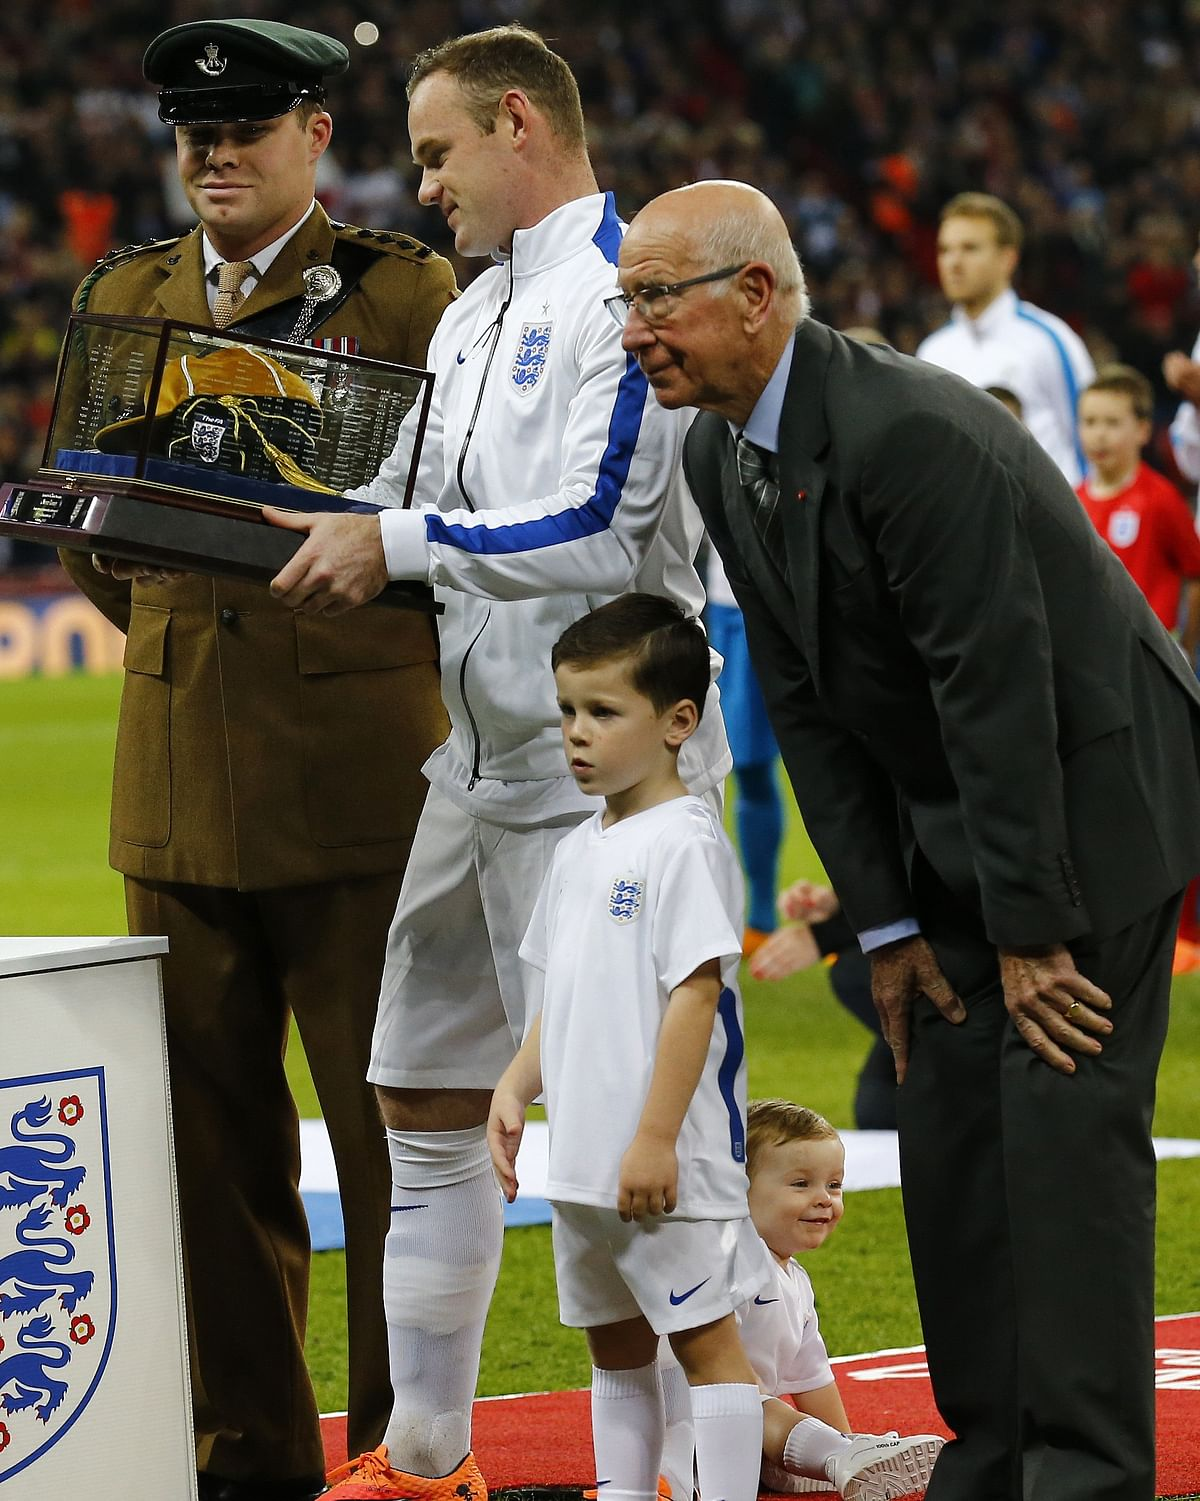 Wayne Rooney receives a golden cap from Bobby Charlton marking his 100th game for England. (Photo: Reuters)